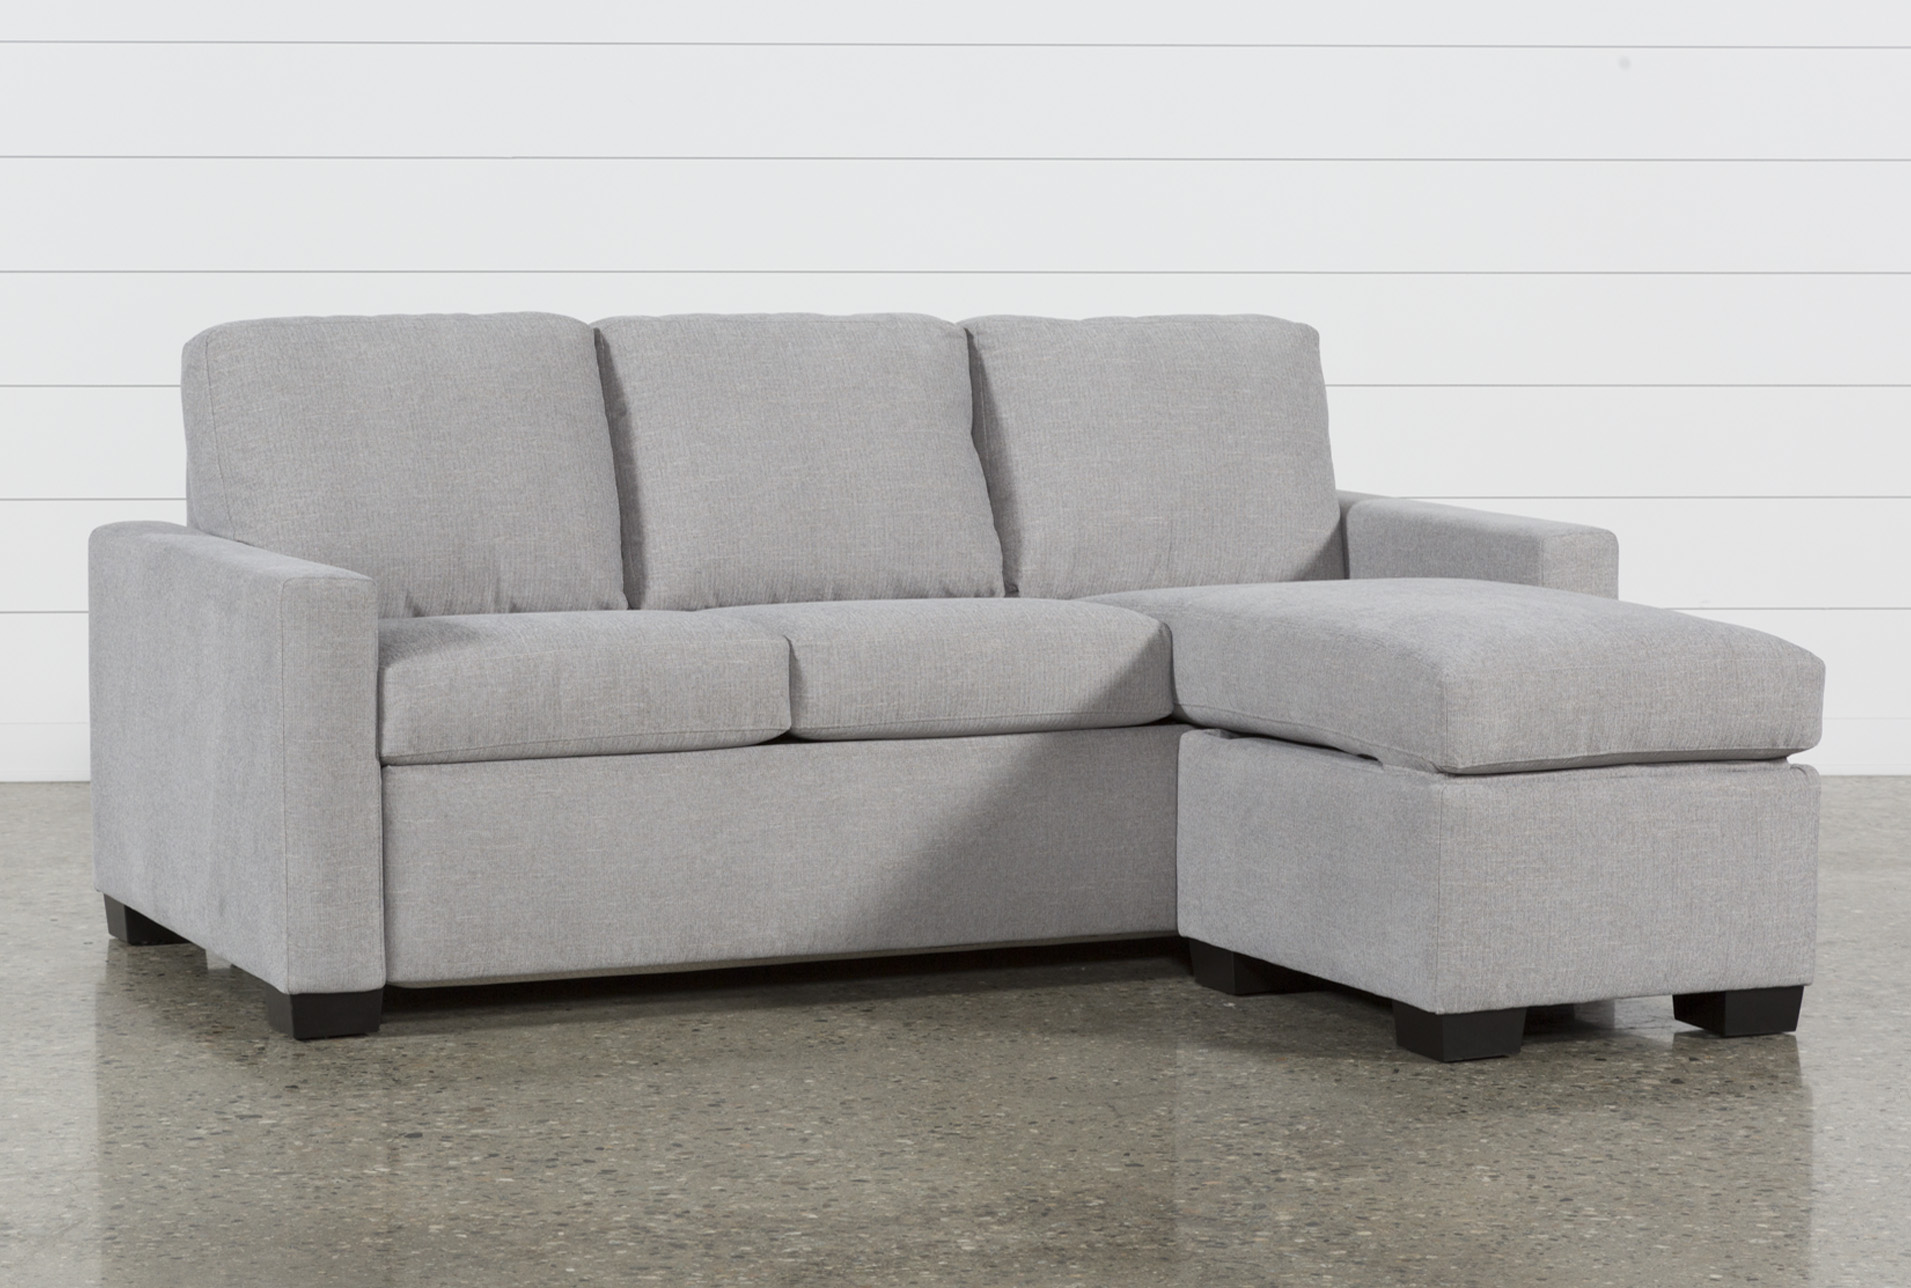 Mackenzie Silverpine Queen Plus Sofa Sleeper W/ Storage Chaise | Living  Spaces